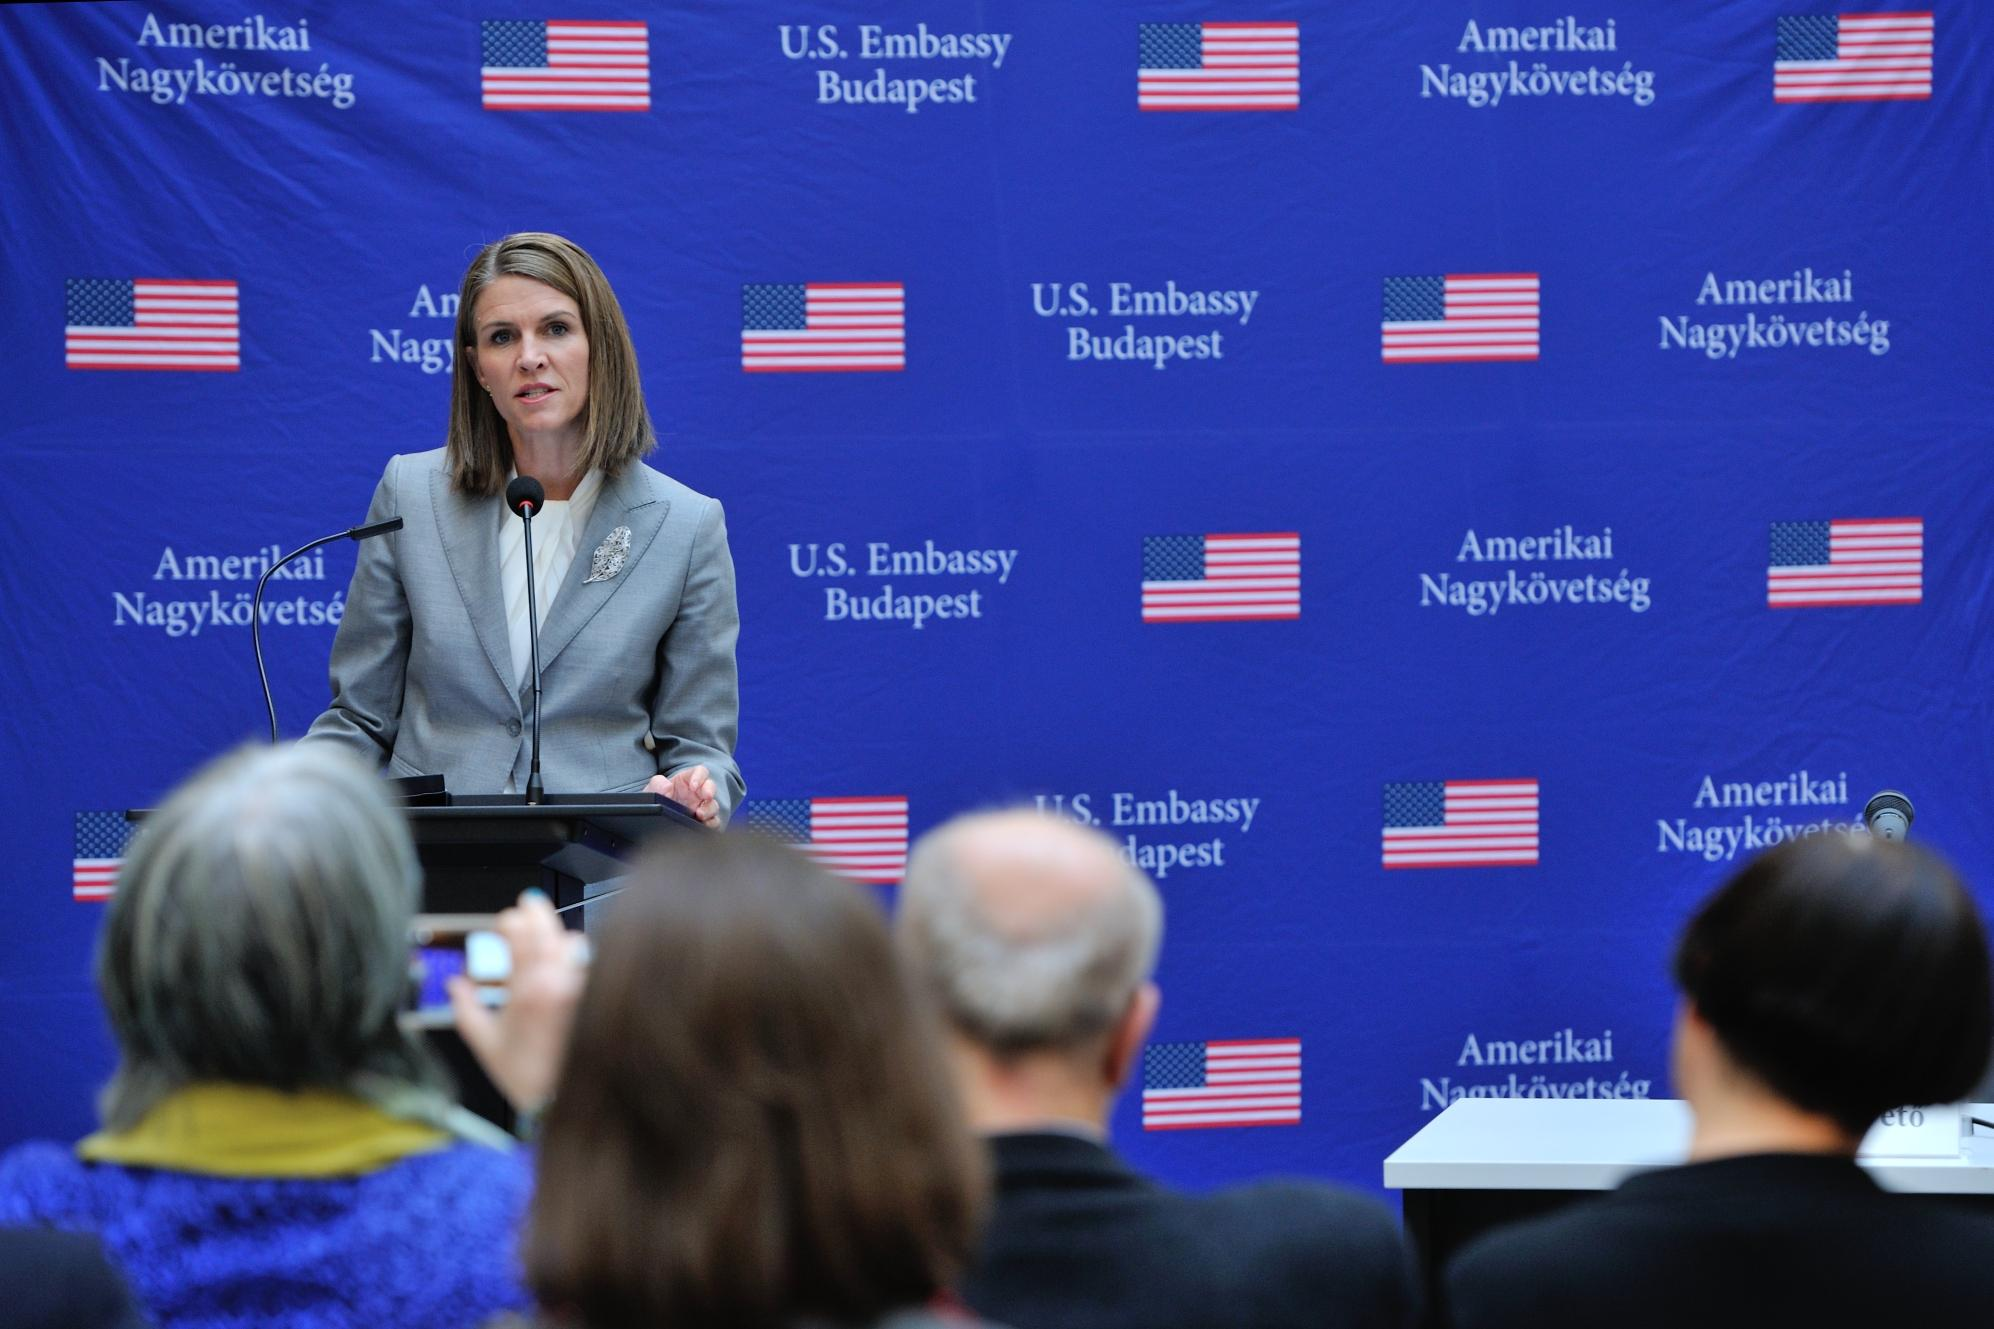 """U.S. Ambassador Colleen Bell at the book launch of  """"The Future of Holocaust Memorialization"""" at CEU. Image credit: U.S. Embassy"""